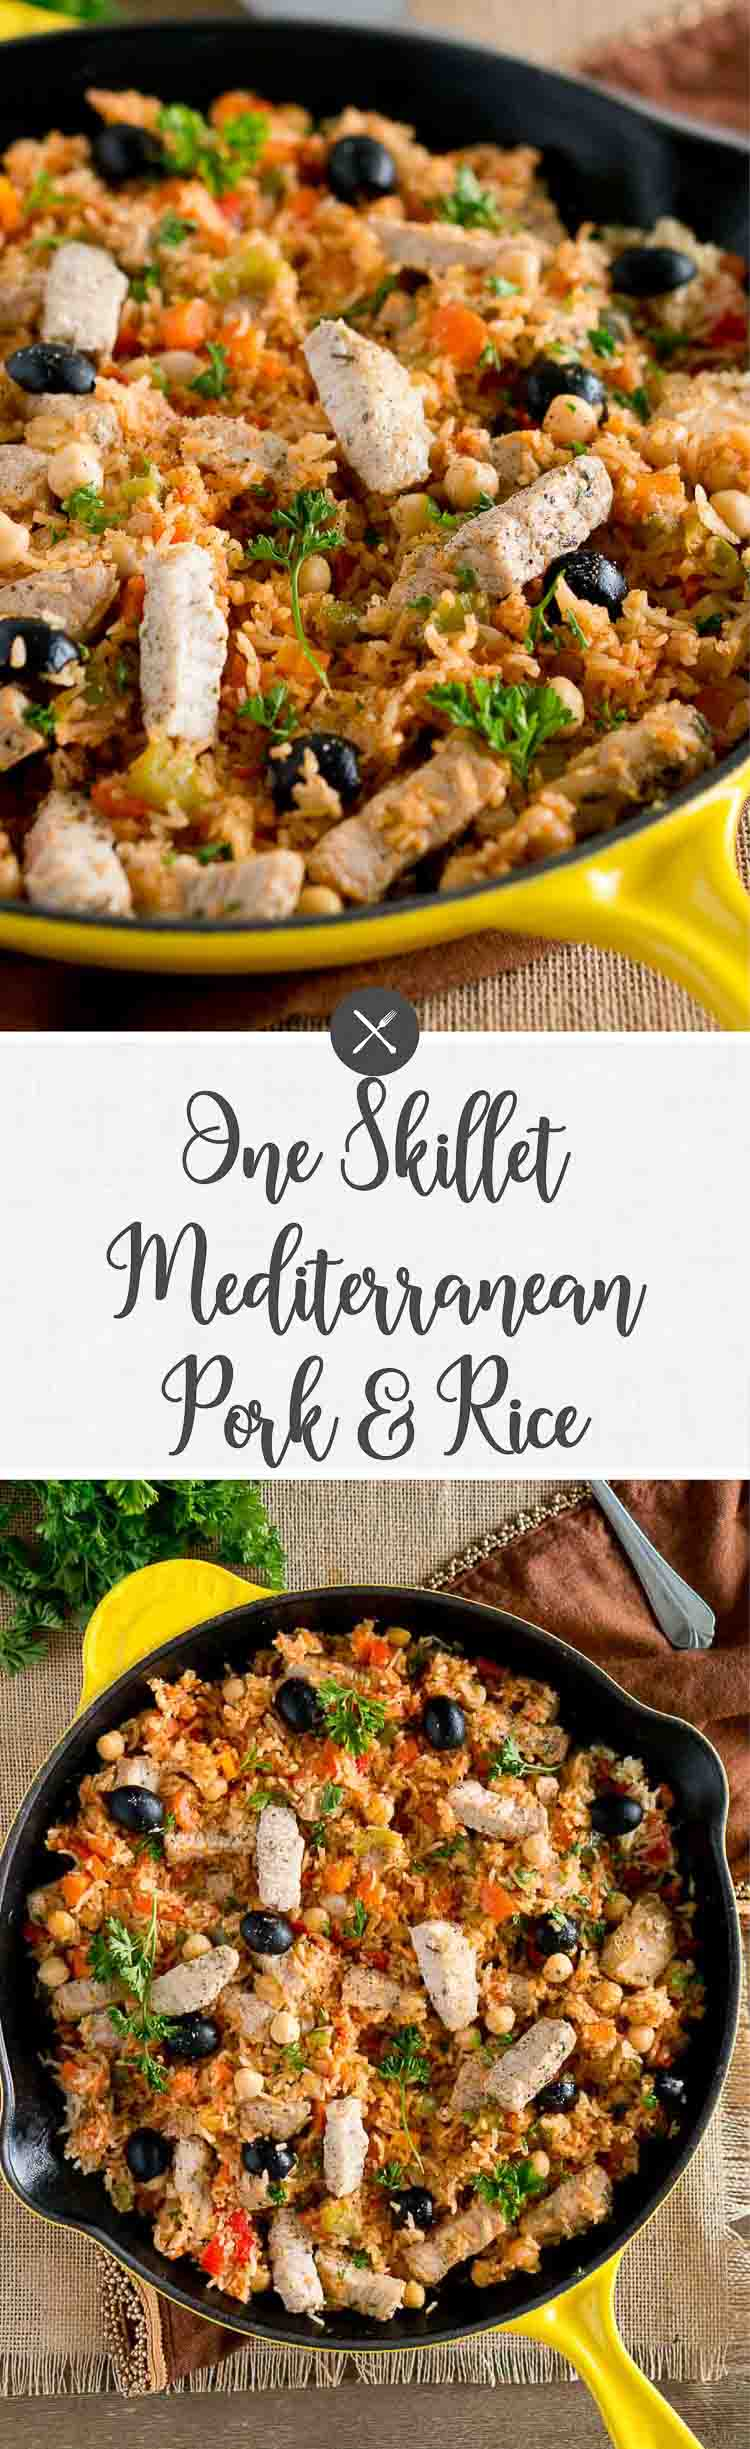 This One Skillet Mediterranean Pork and Rice is a delicious meal the whole family will love. It's easy and quick - only 30 minutes and one pan meal. #30minutes #onepot #oneskillet #easyrecipe #quickdinner #healthy #deliciousfood #easydinner